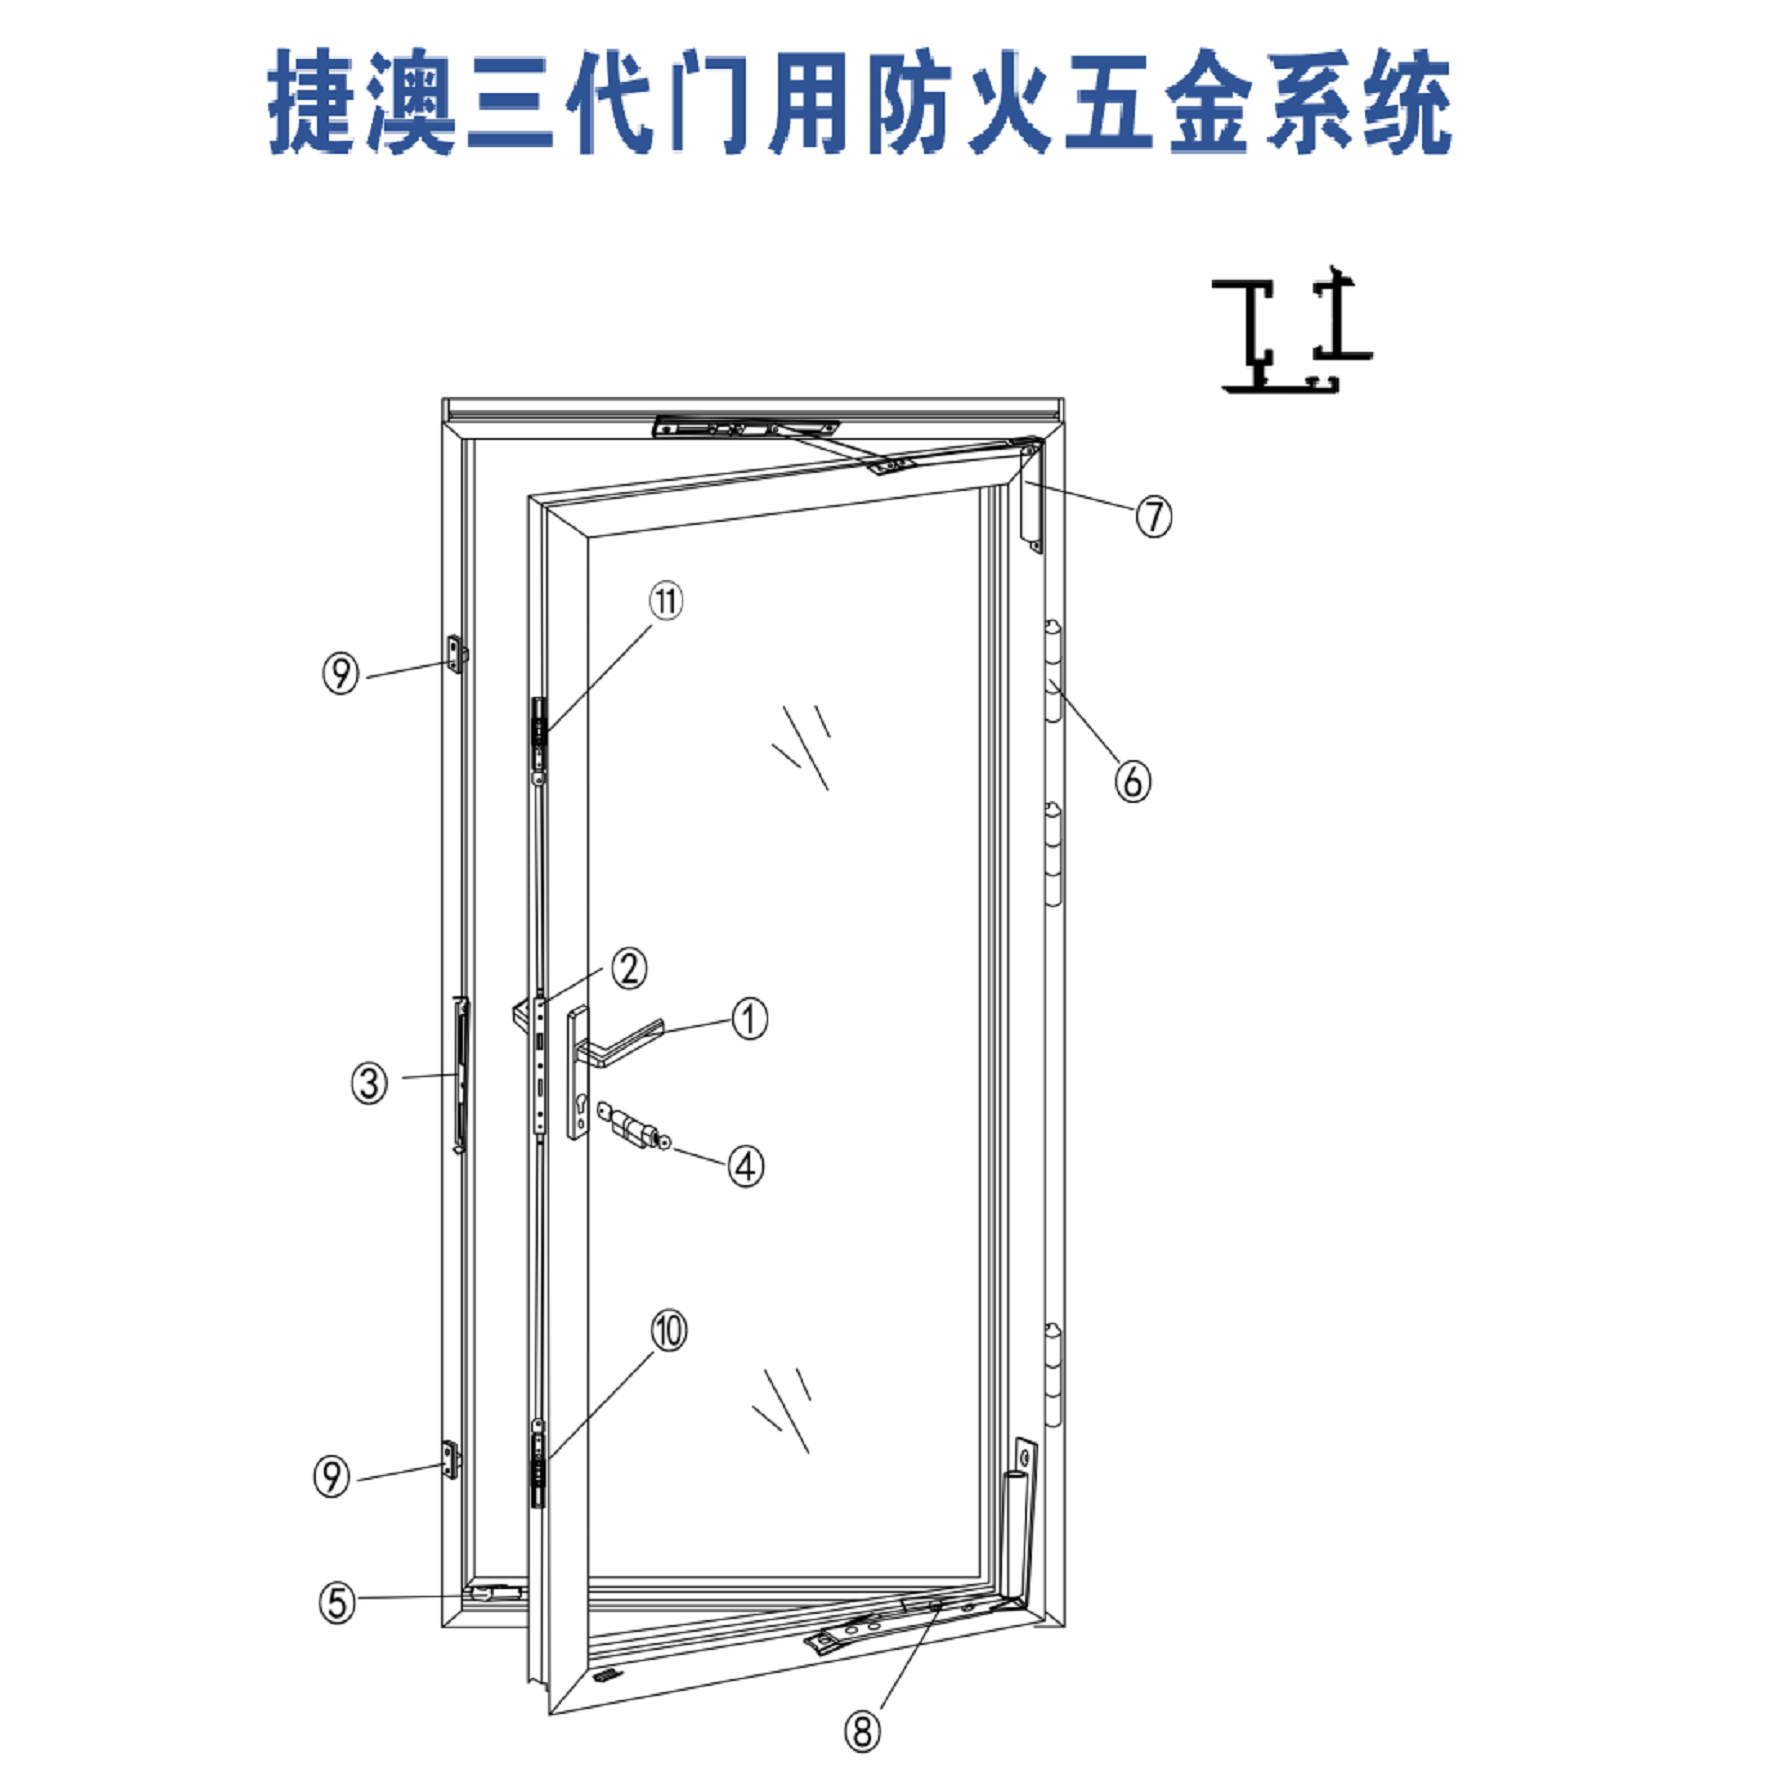 Fire protection hardware system for Jie Macao